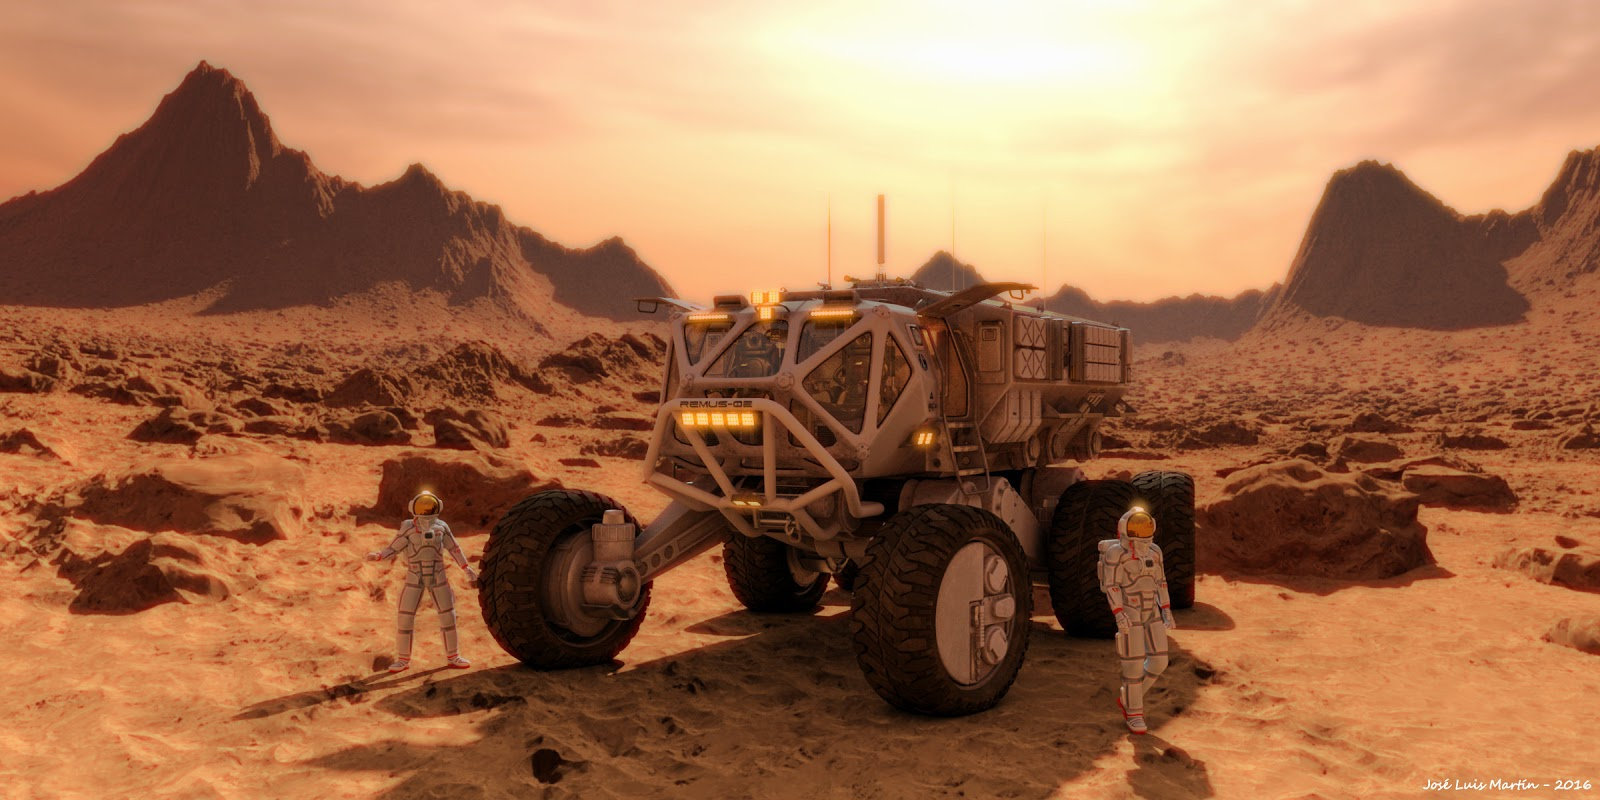 Mars exploration rover by José Luis Martín for Science Today Magazine